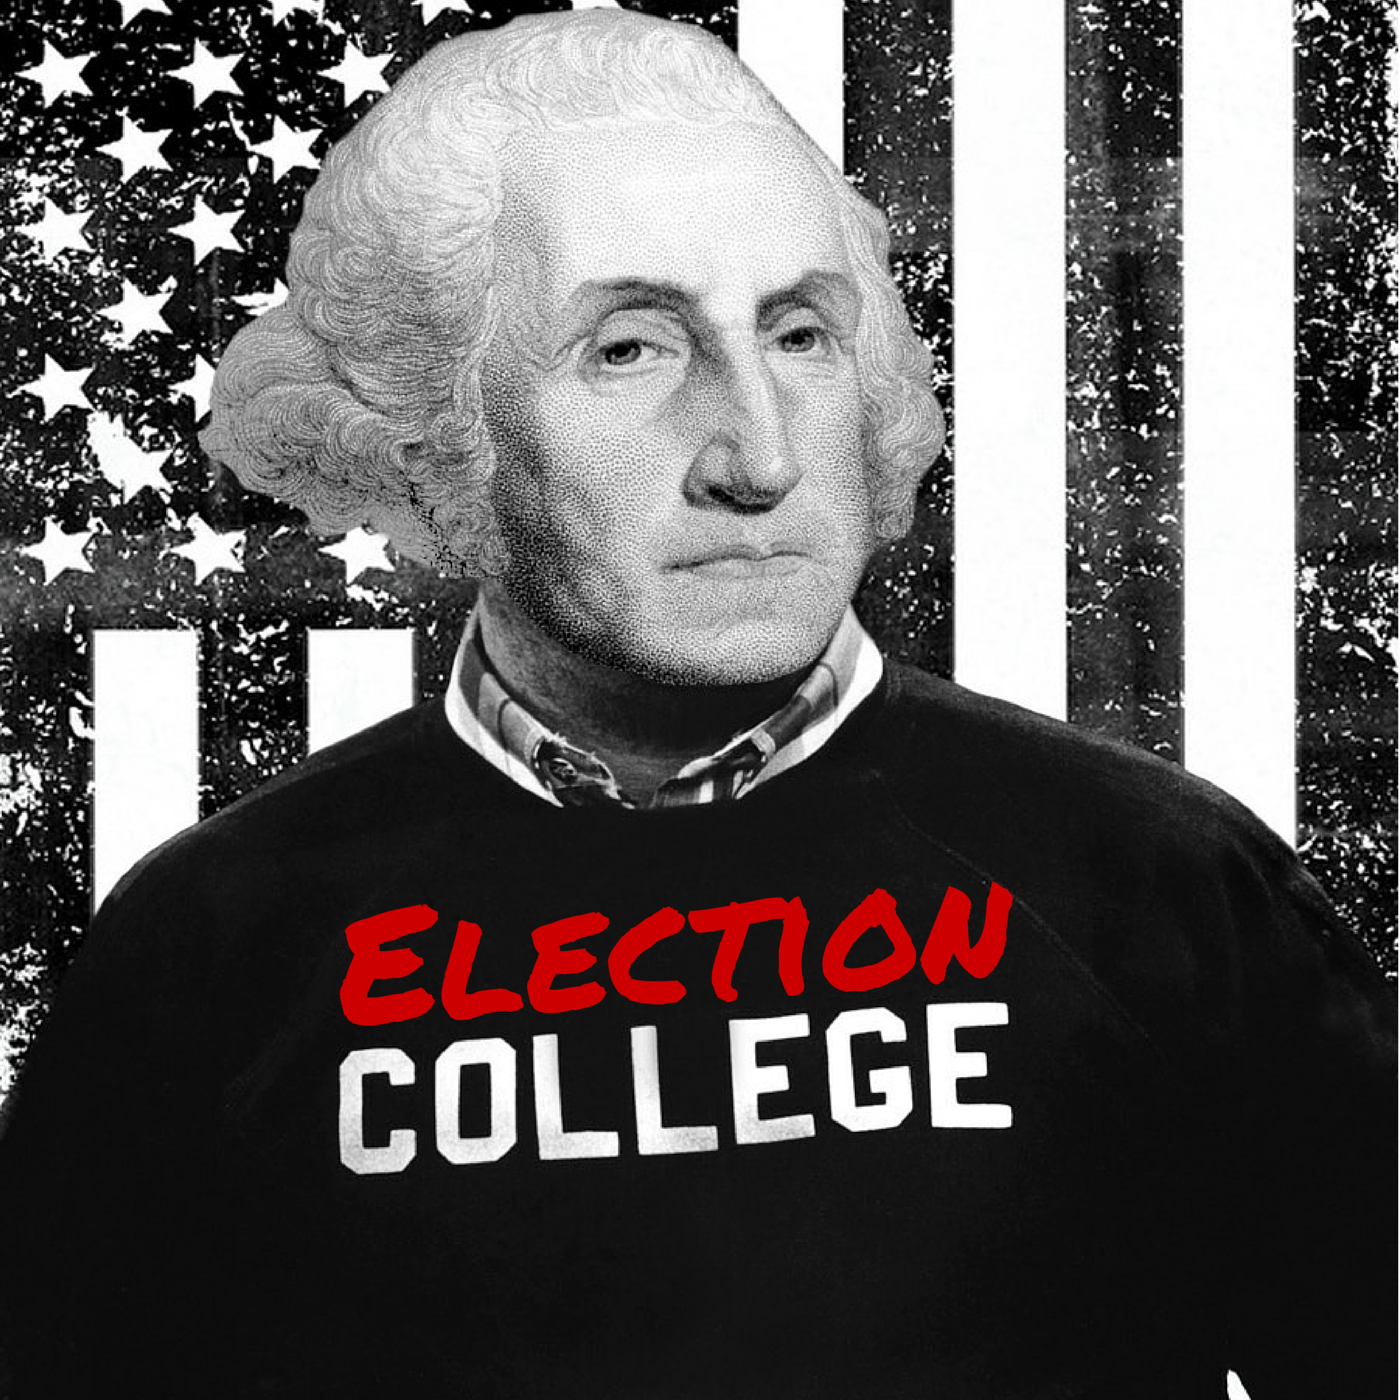 Thomas Jefferson: Part 2 | Episode #115 | Election College: United States Presidential Election History